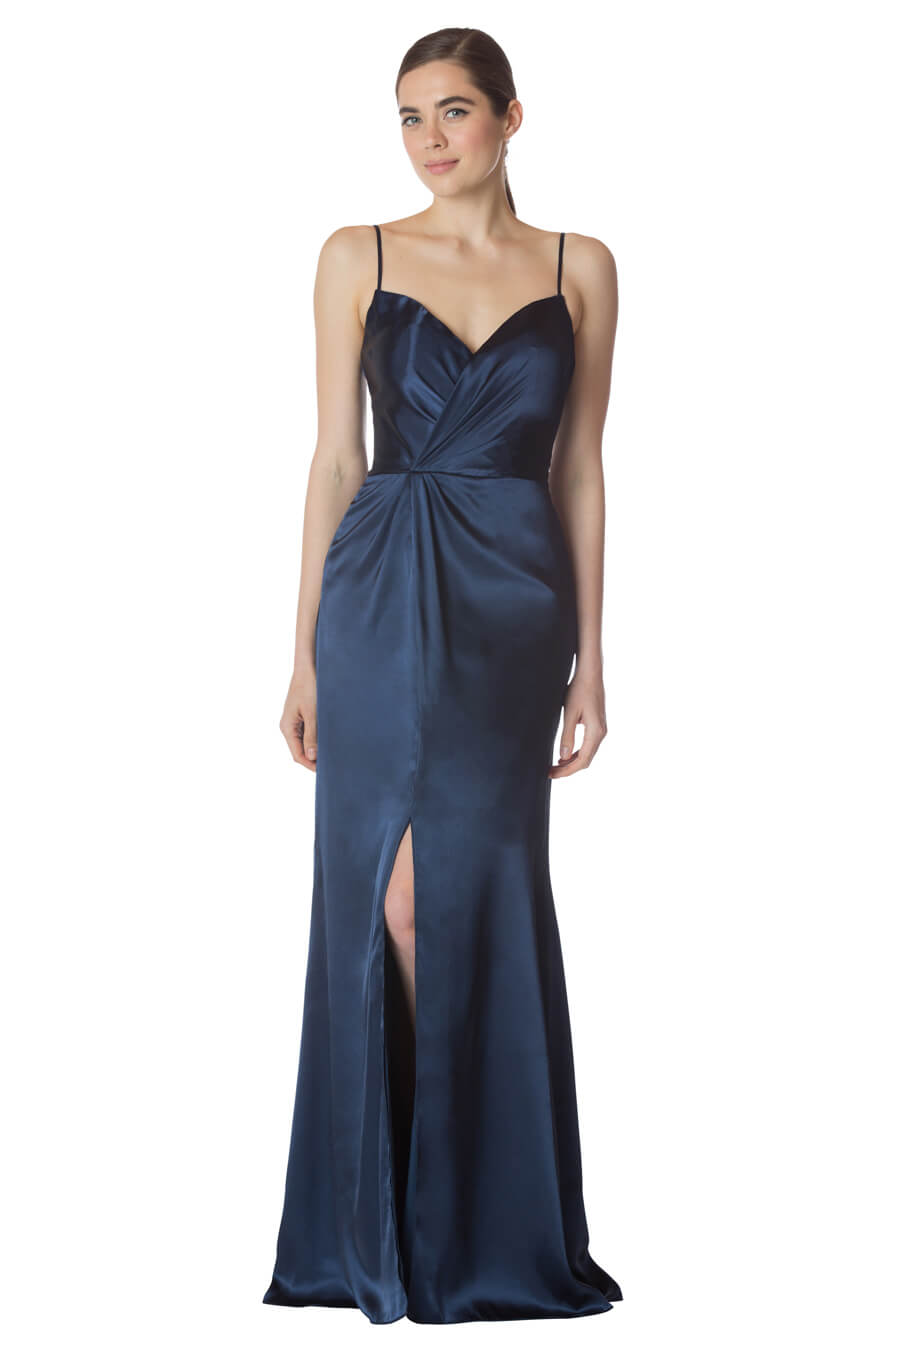 STYLE: 1767 | Bridesmaid Dresses, Evening Gowns & Flower Girl ...